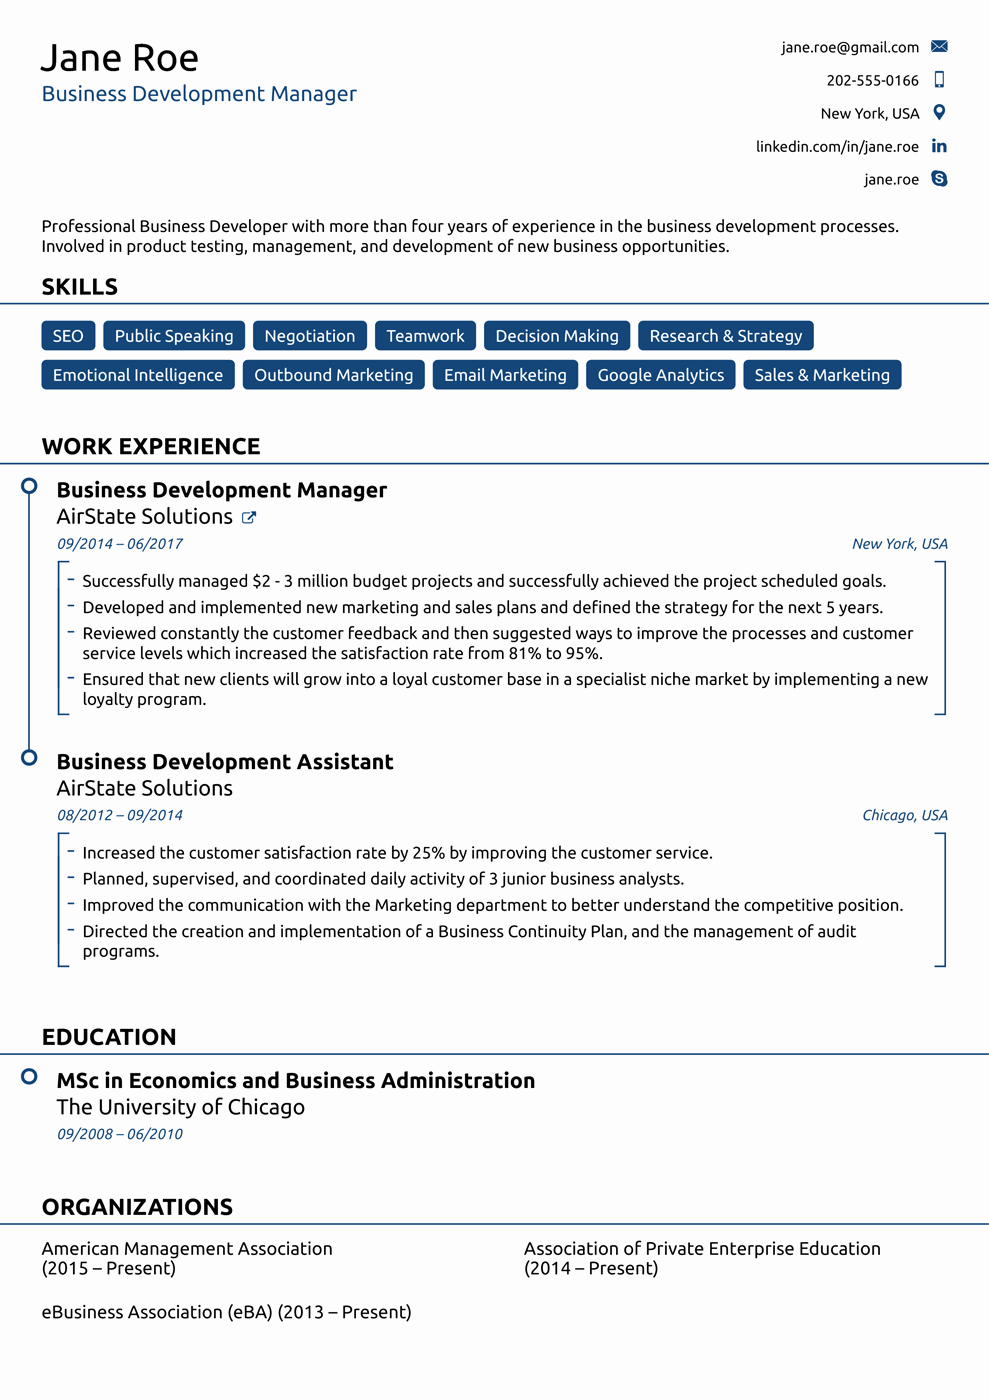 Free Functional Resume Template 2018 Awesome 8 Best Line Resume Templates Of 2018 [download & Customize]